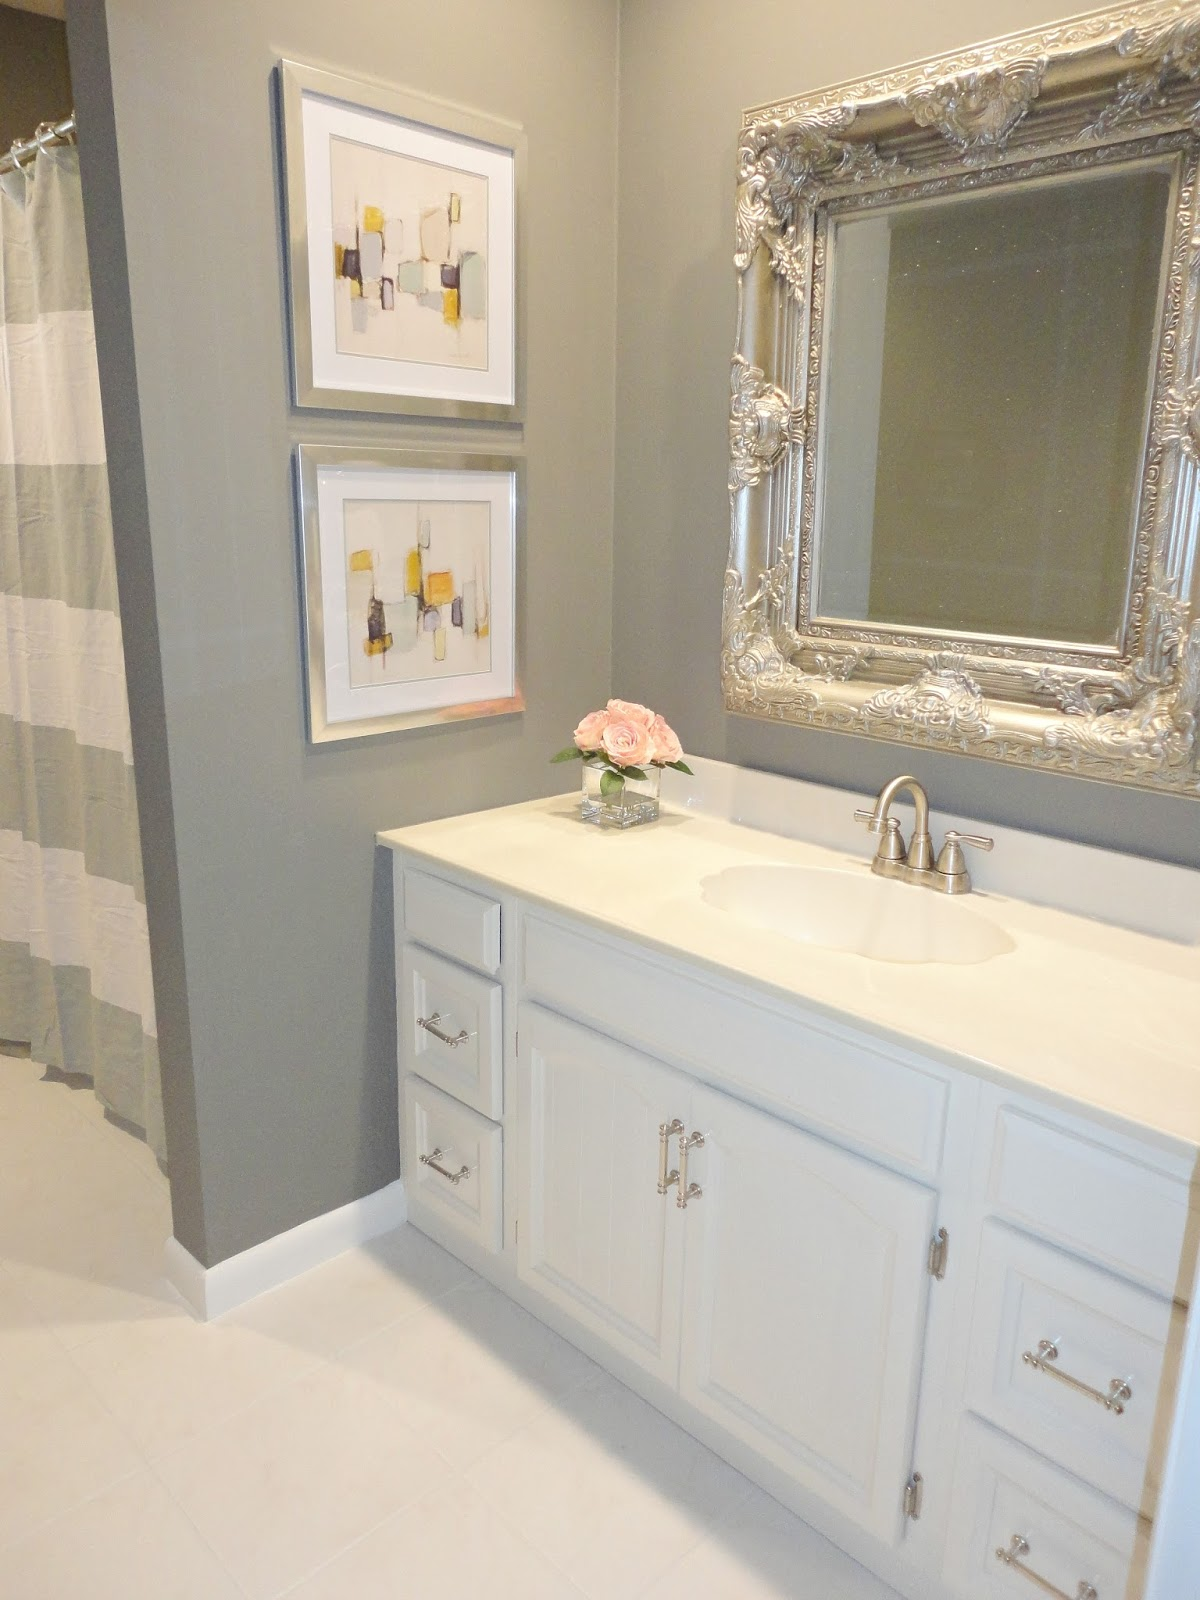 Livelovediy diy bathroom remodel on a budget for Bathroom remodel ideas on a budget